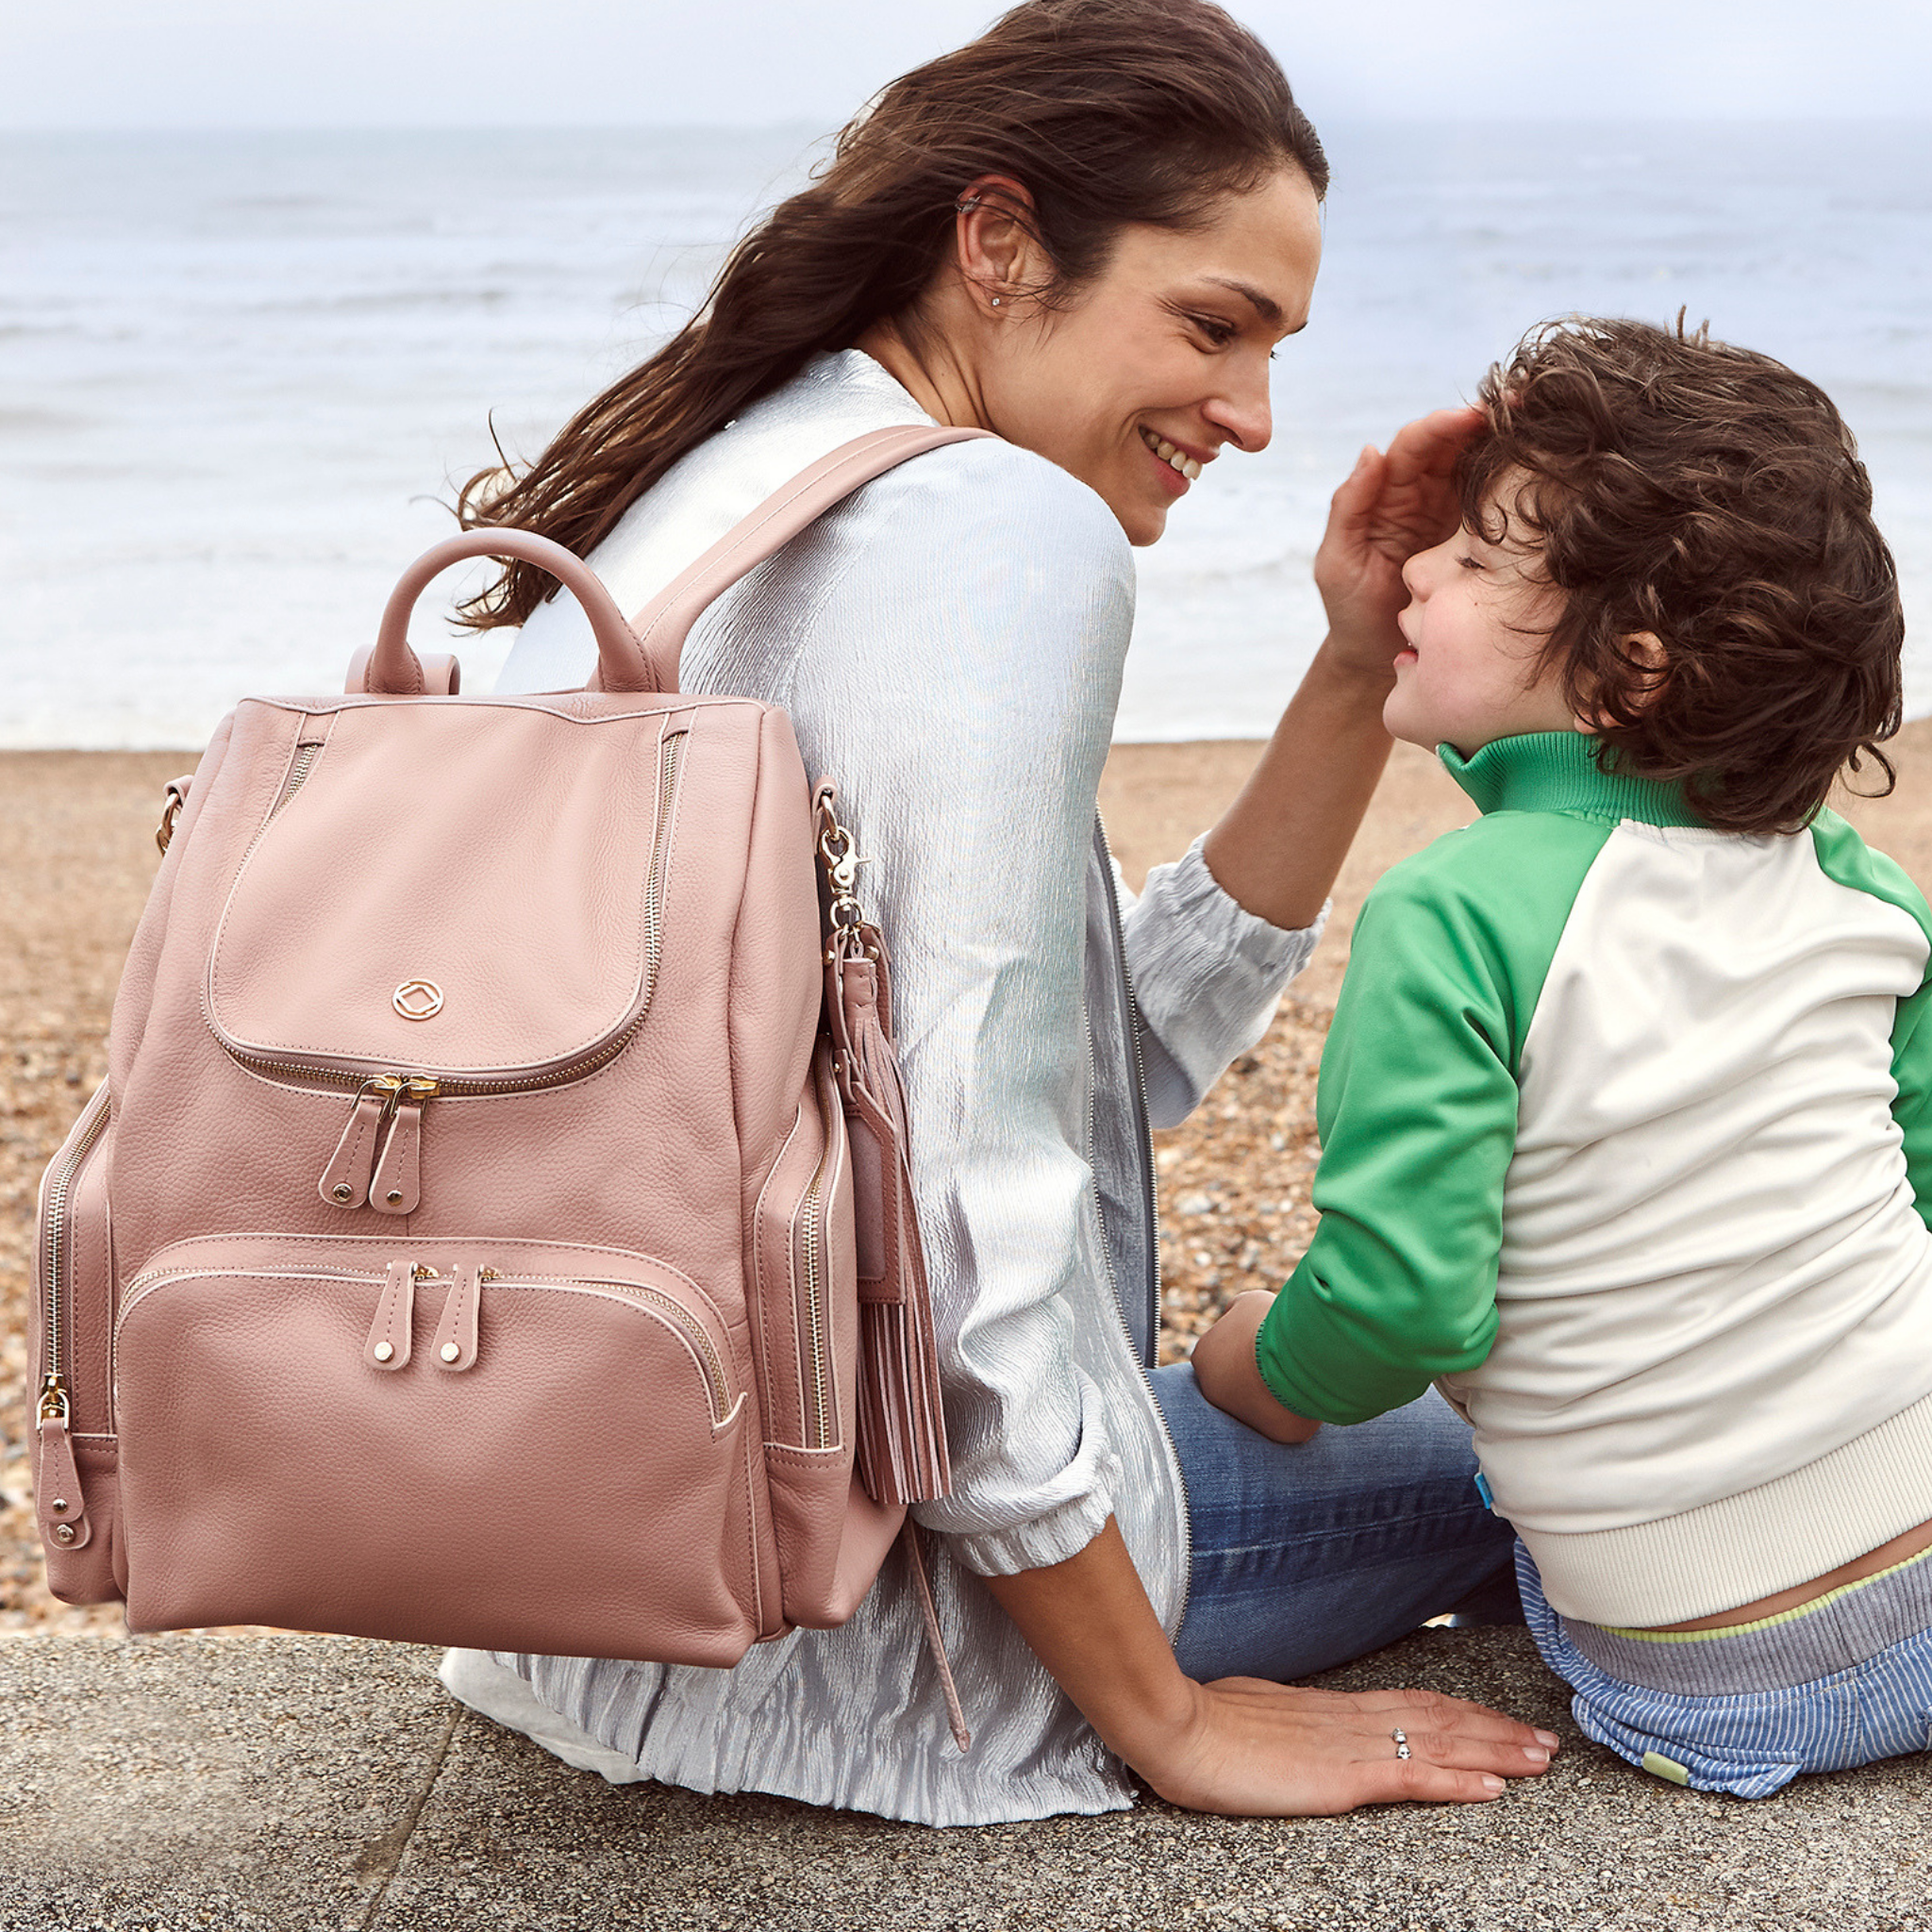 Amber Antique Rose Leather Backpack worn on back while sitting with child on beach